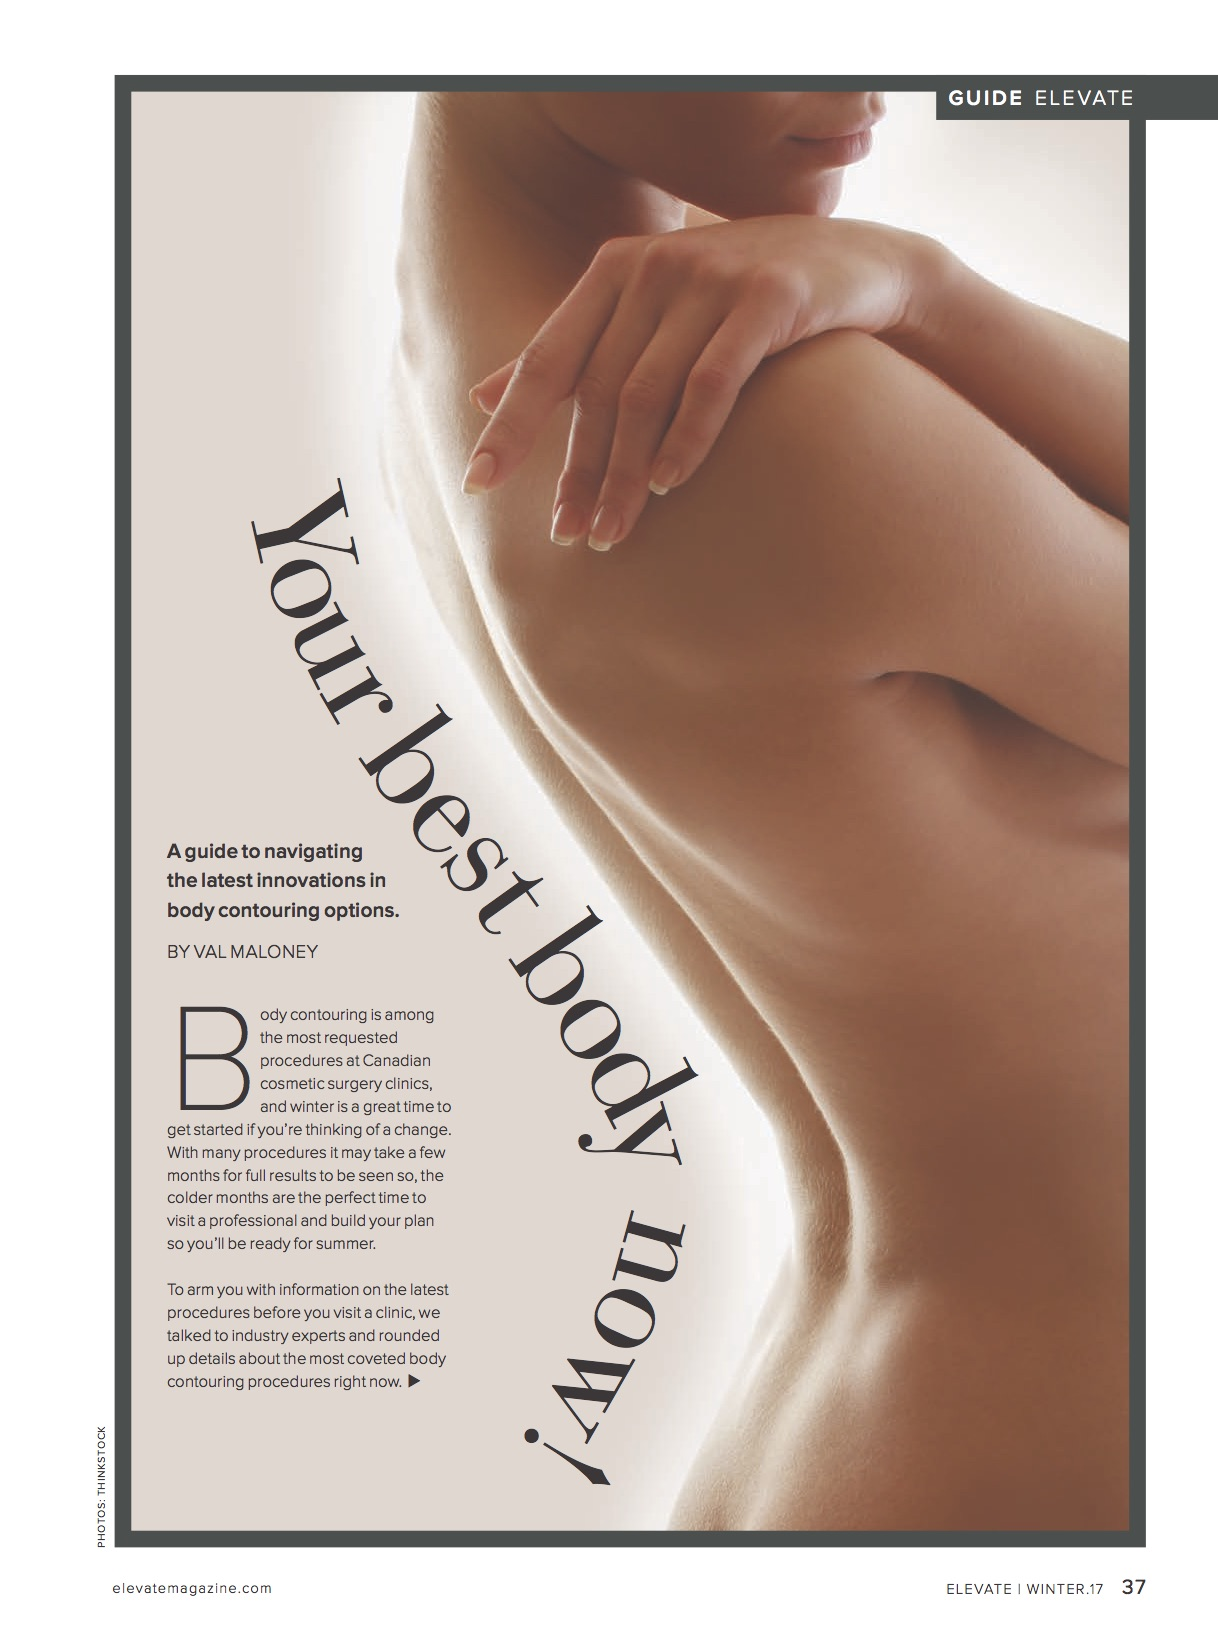 Med V Spa featured on Elevate Magazine